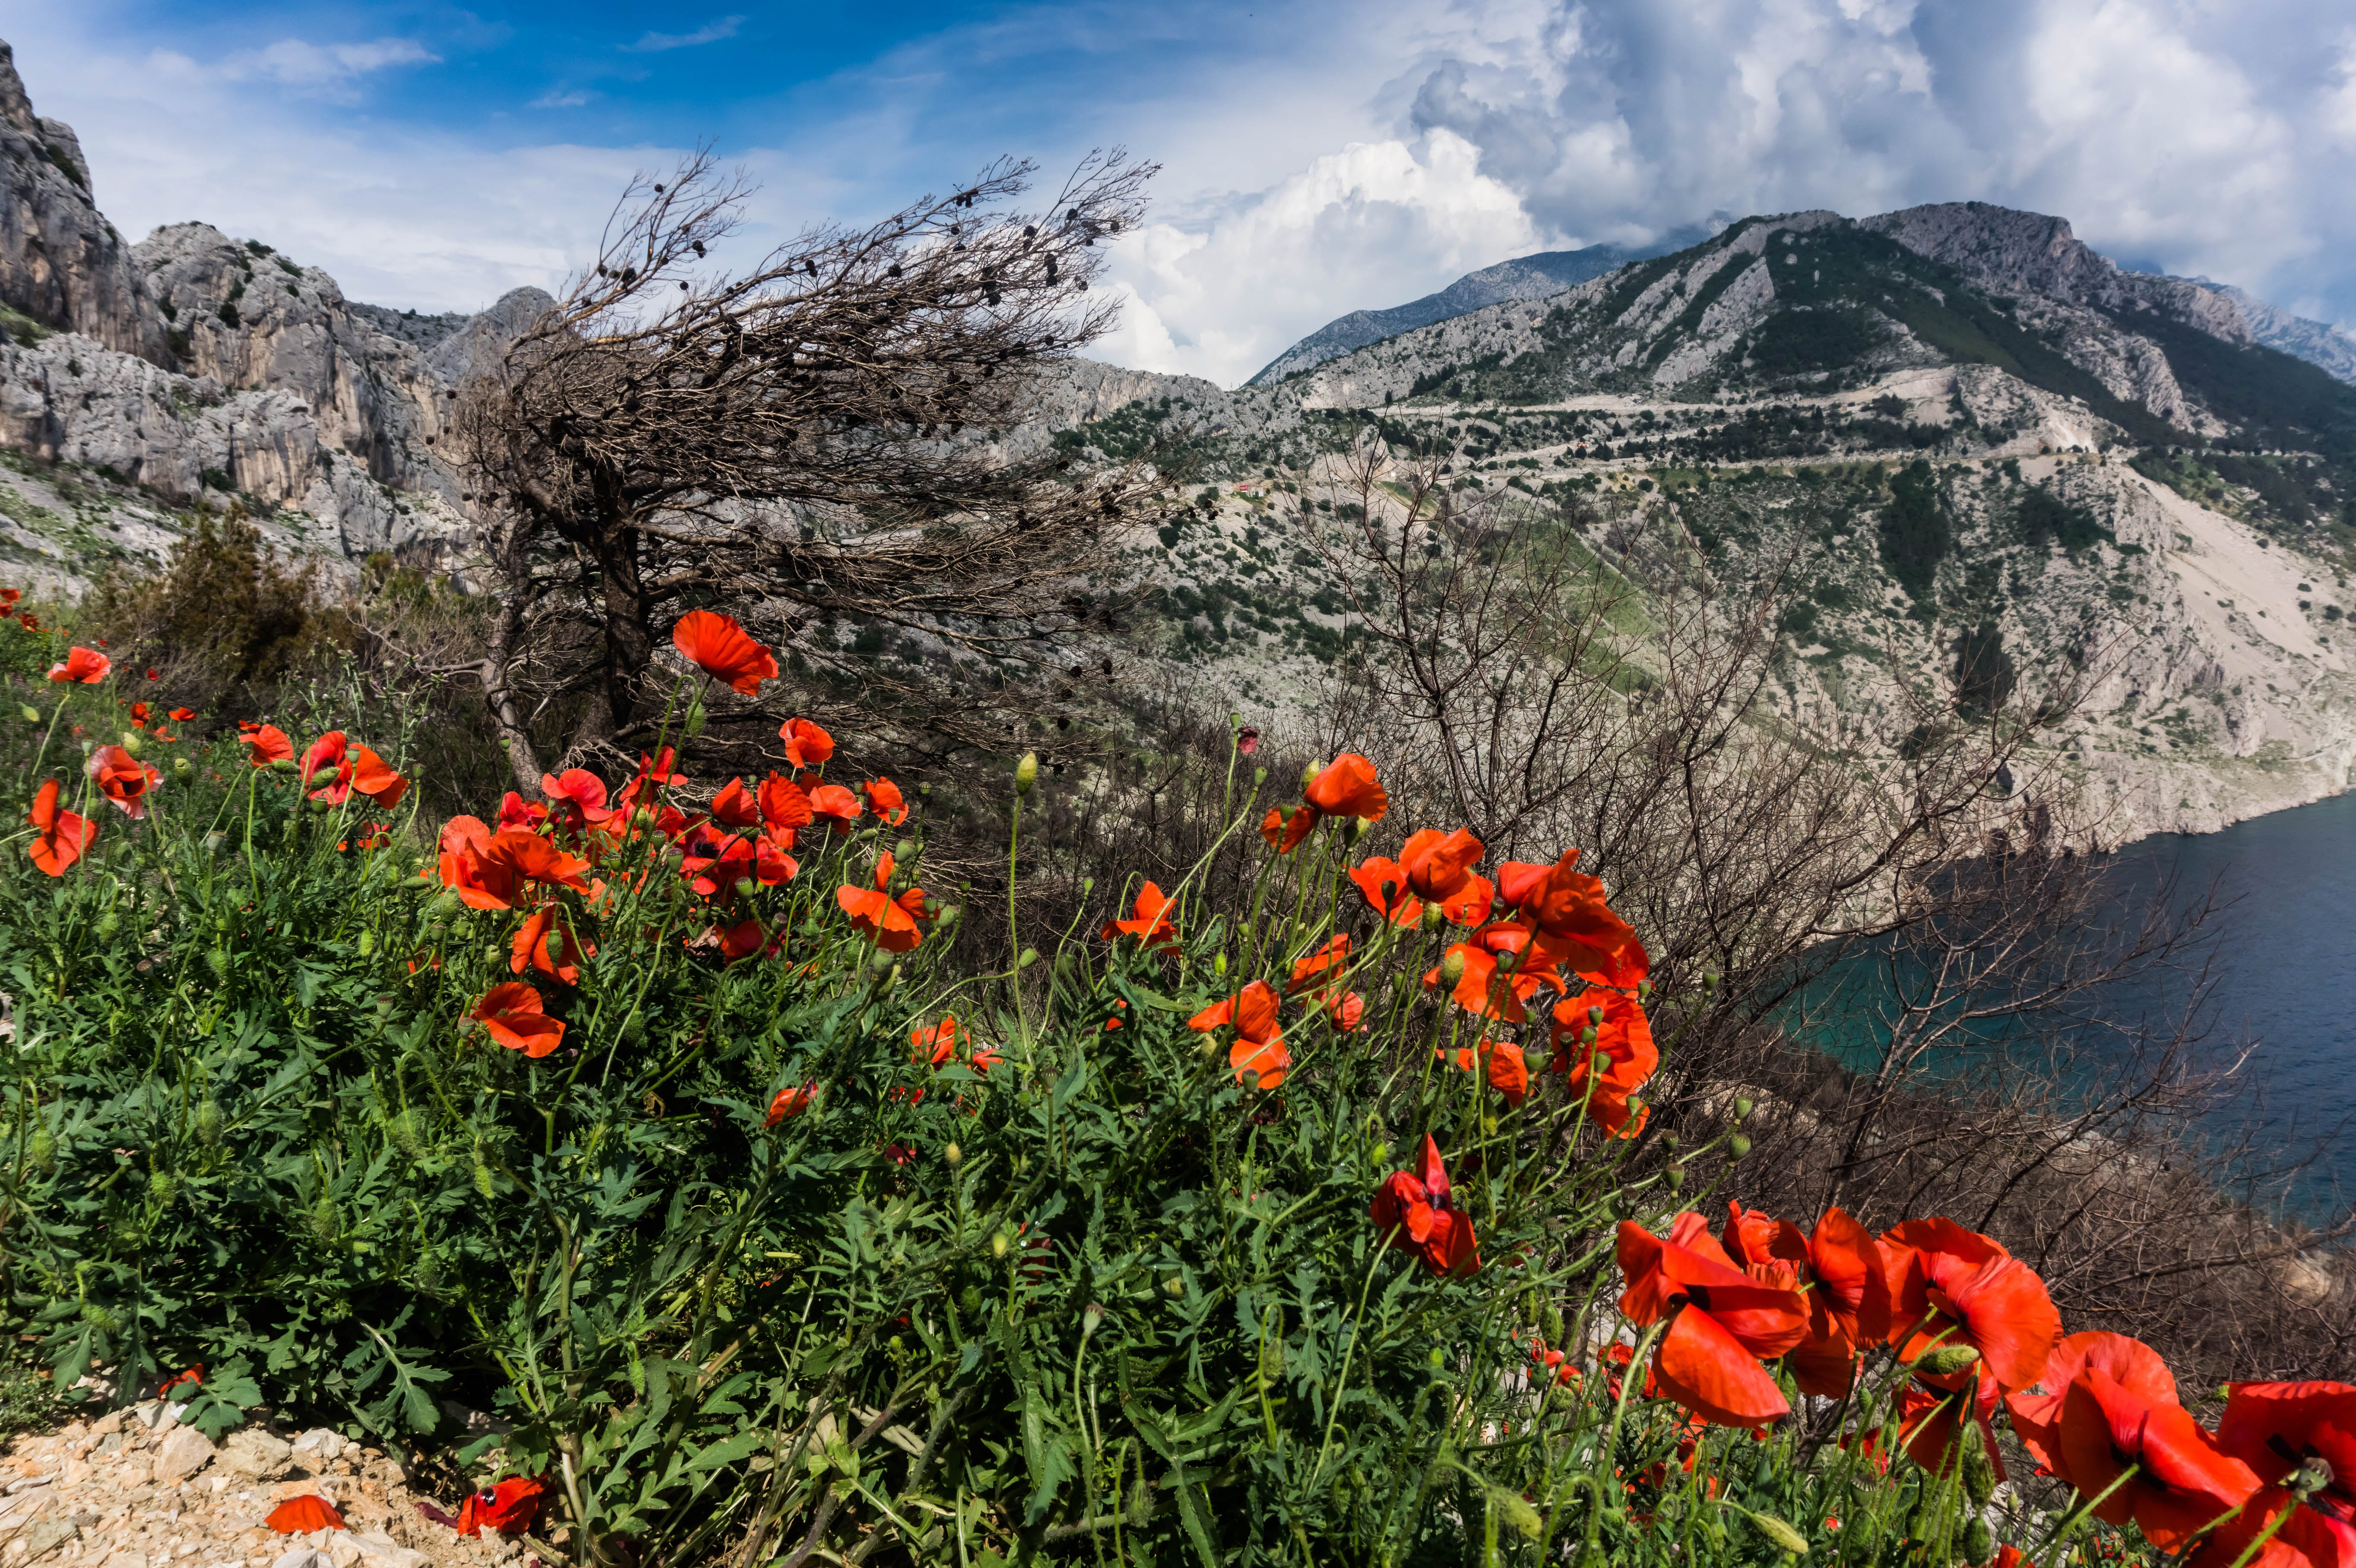 Red Poppies Beside a Body of Water Under Blue and White Cloudy Sky